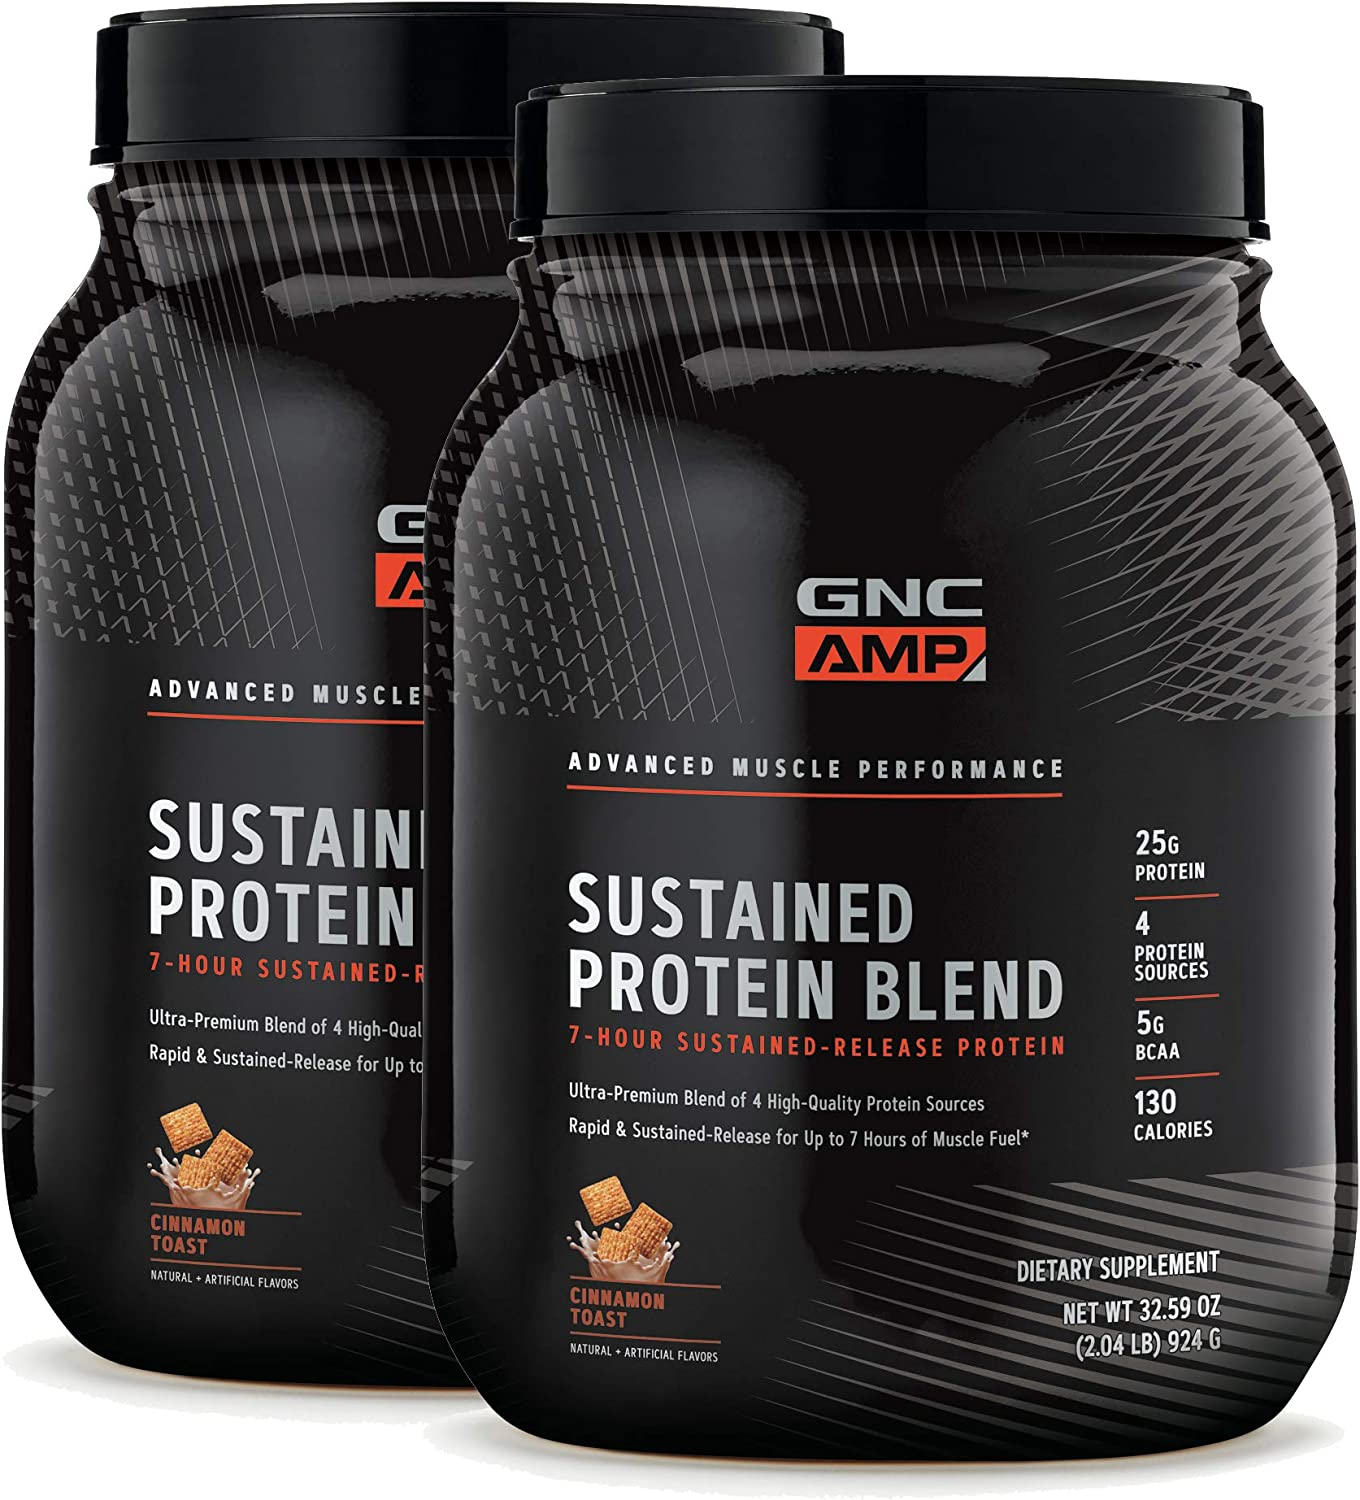 GNC AMP Sustained Protein Blend – Cinnamon Toast – Twin Pack